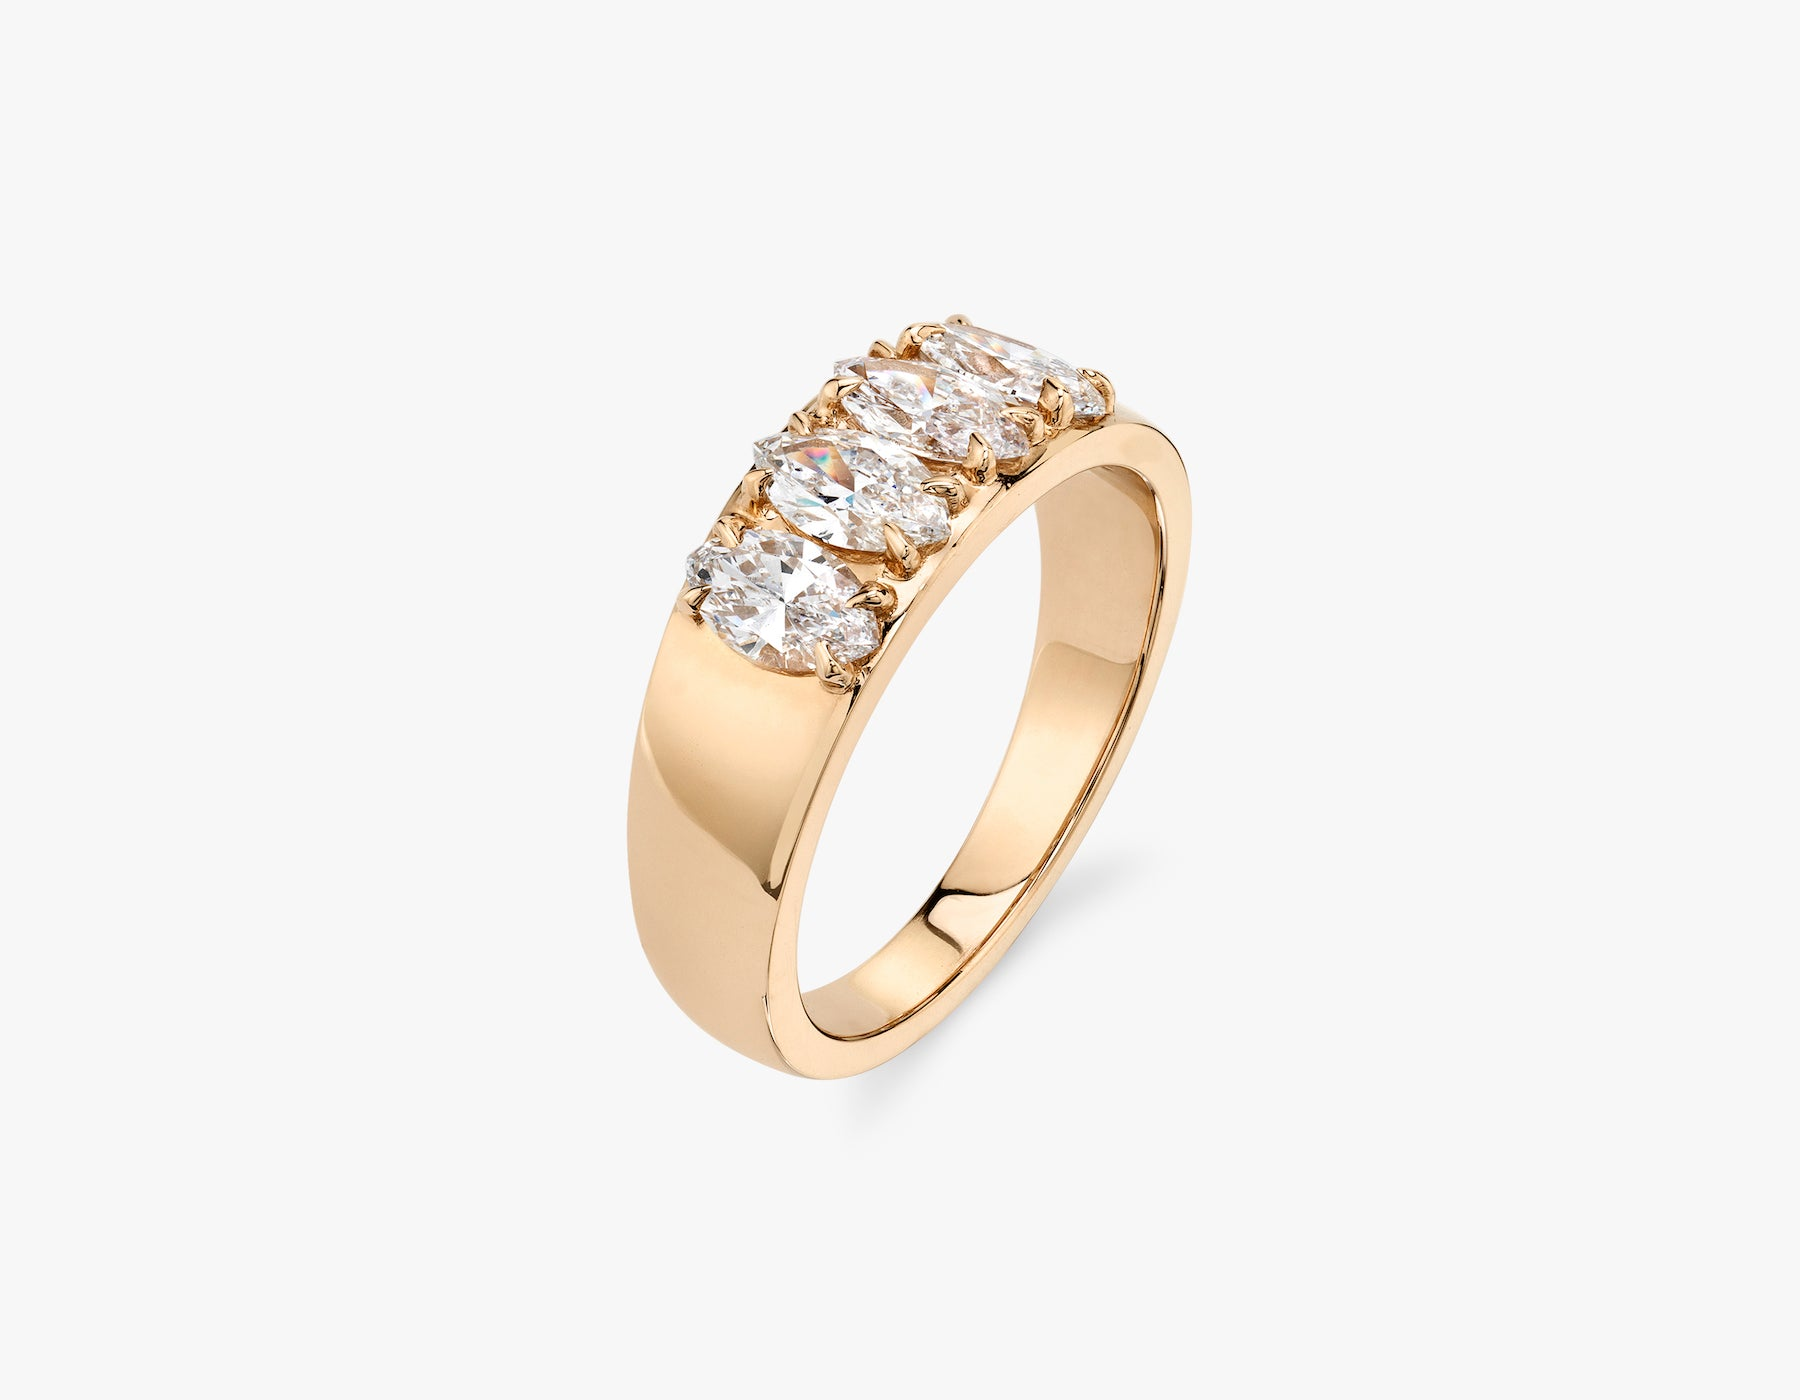 Vrai classic elegant Marquise Diamond Tetrad Band .25ct marquise Diamond Ring, 14K Rose Gold